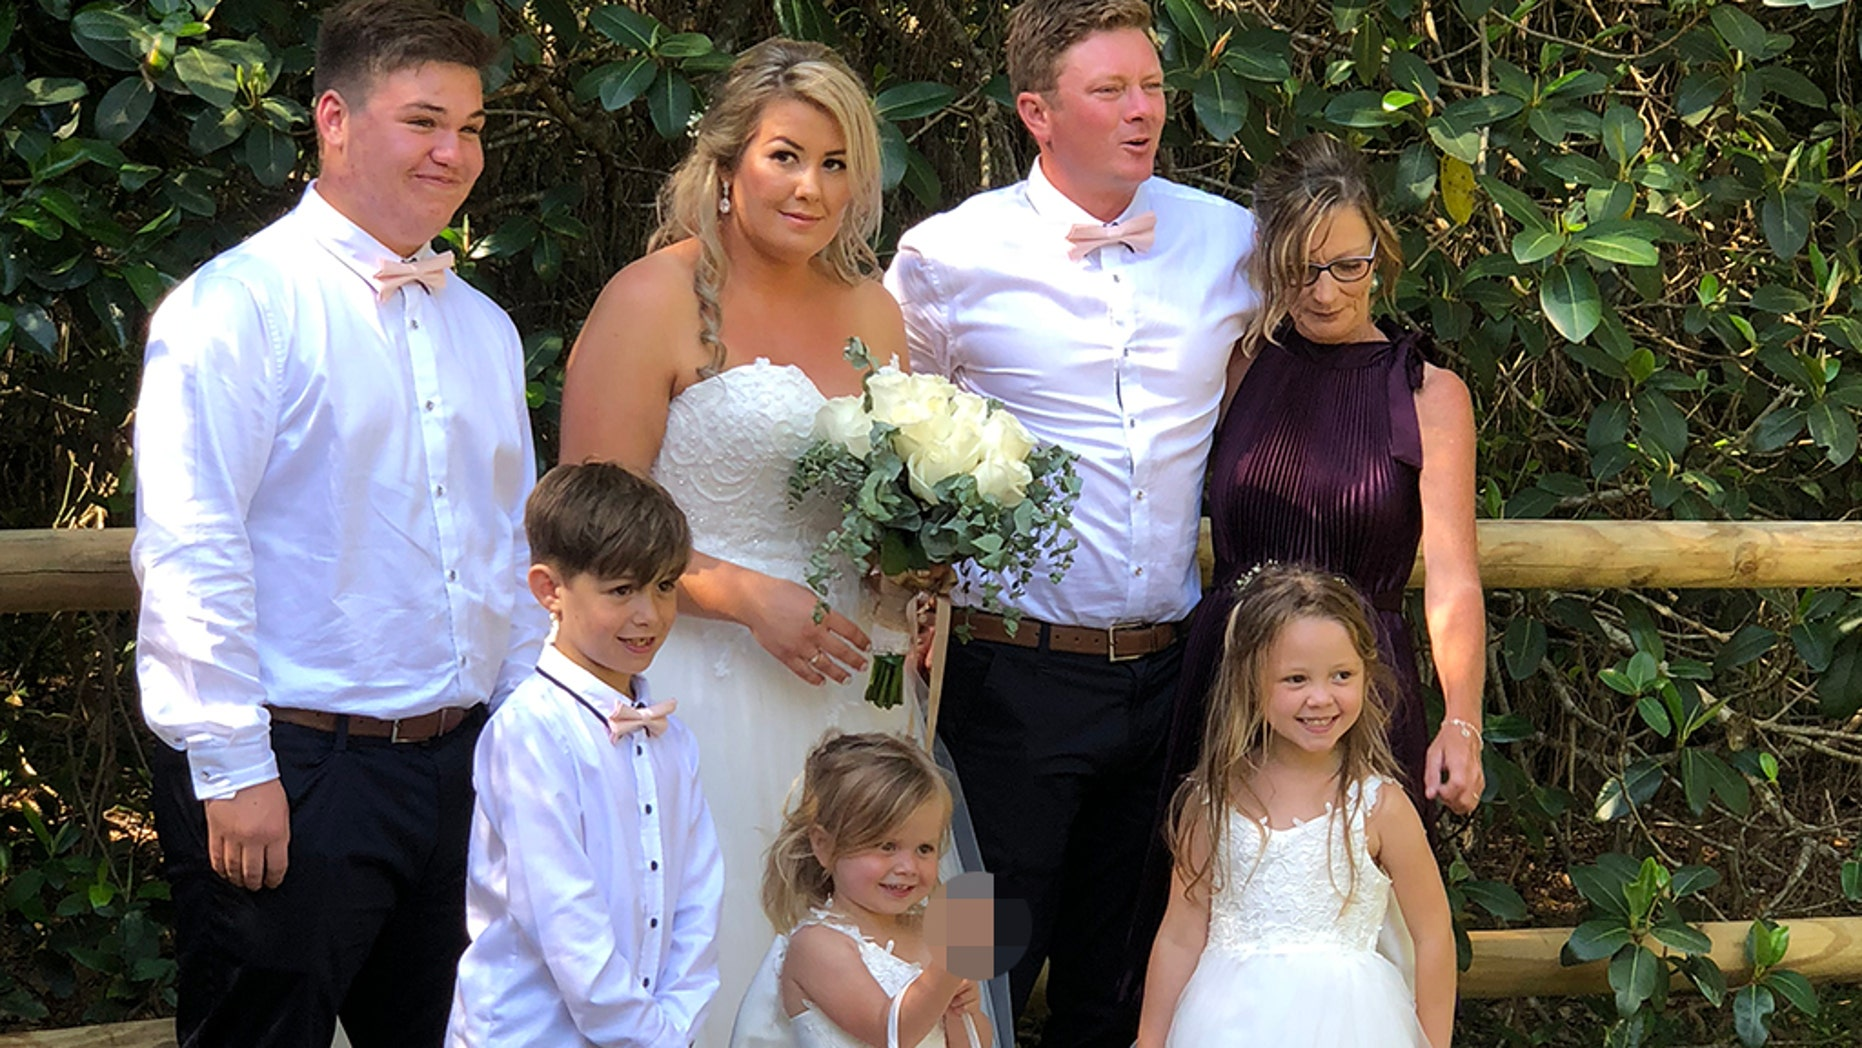 (Pictured: l-r Ashton,15, Tyler,8, Hannah,31, Maddison,3, Nathan,31. Halle,5, and mother in law Louise) - A mortified mom was left red-faced after her cheeky little girl hilariously popped the middle finger up during a family photoshoot on her wedding day.